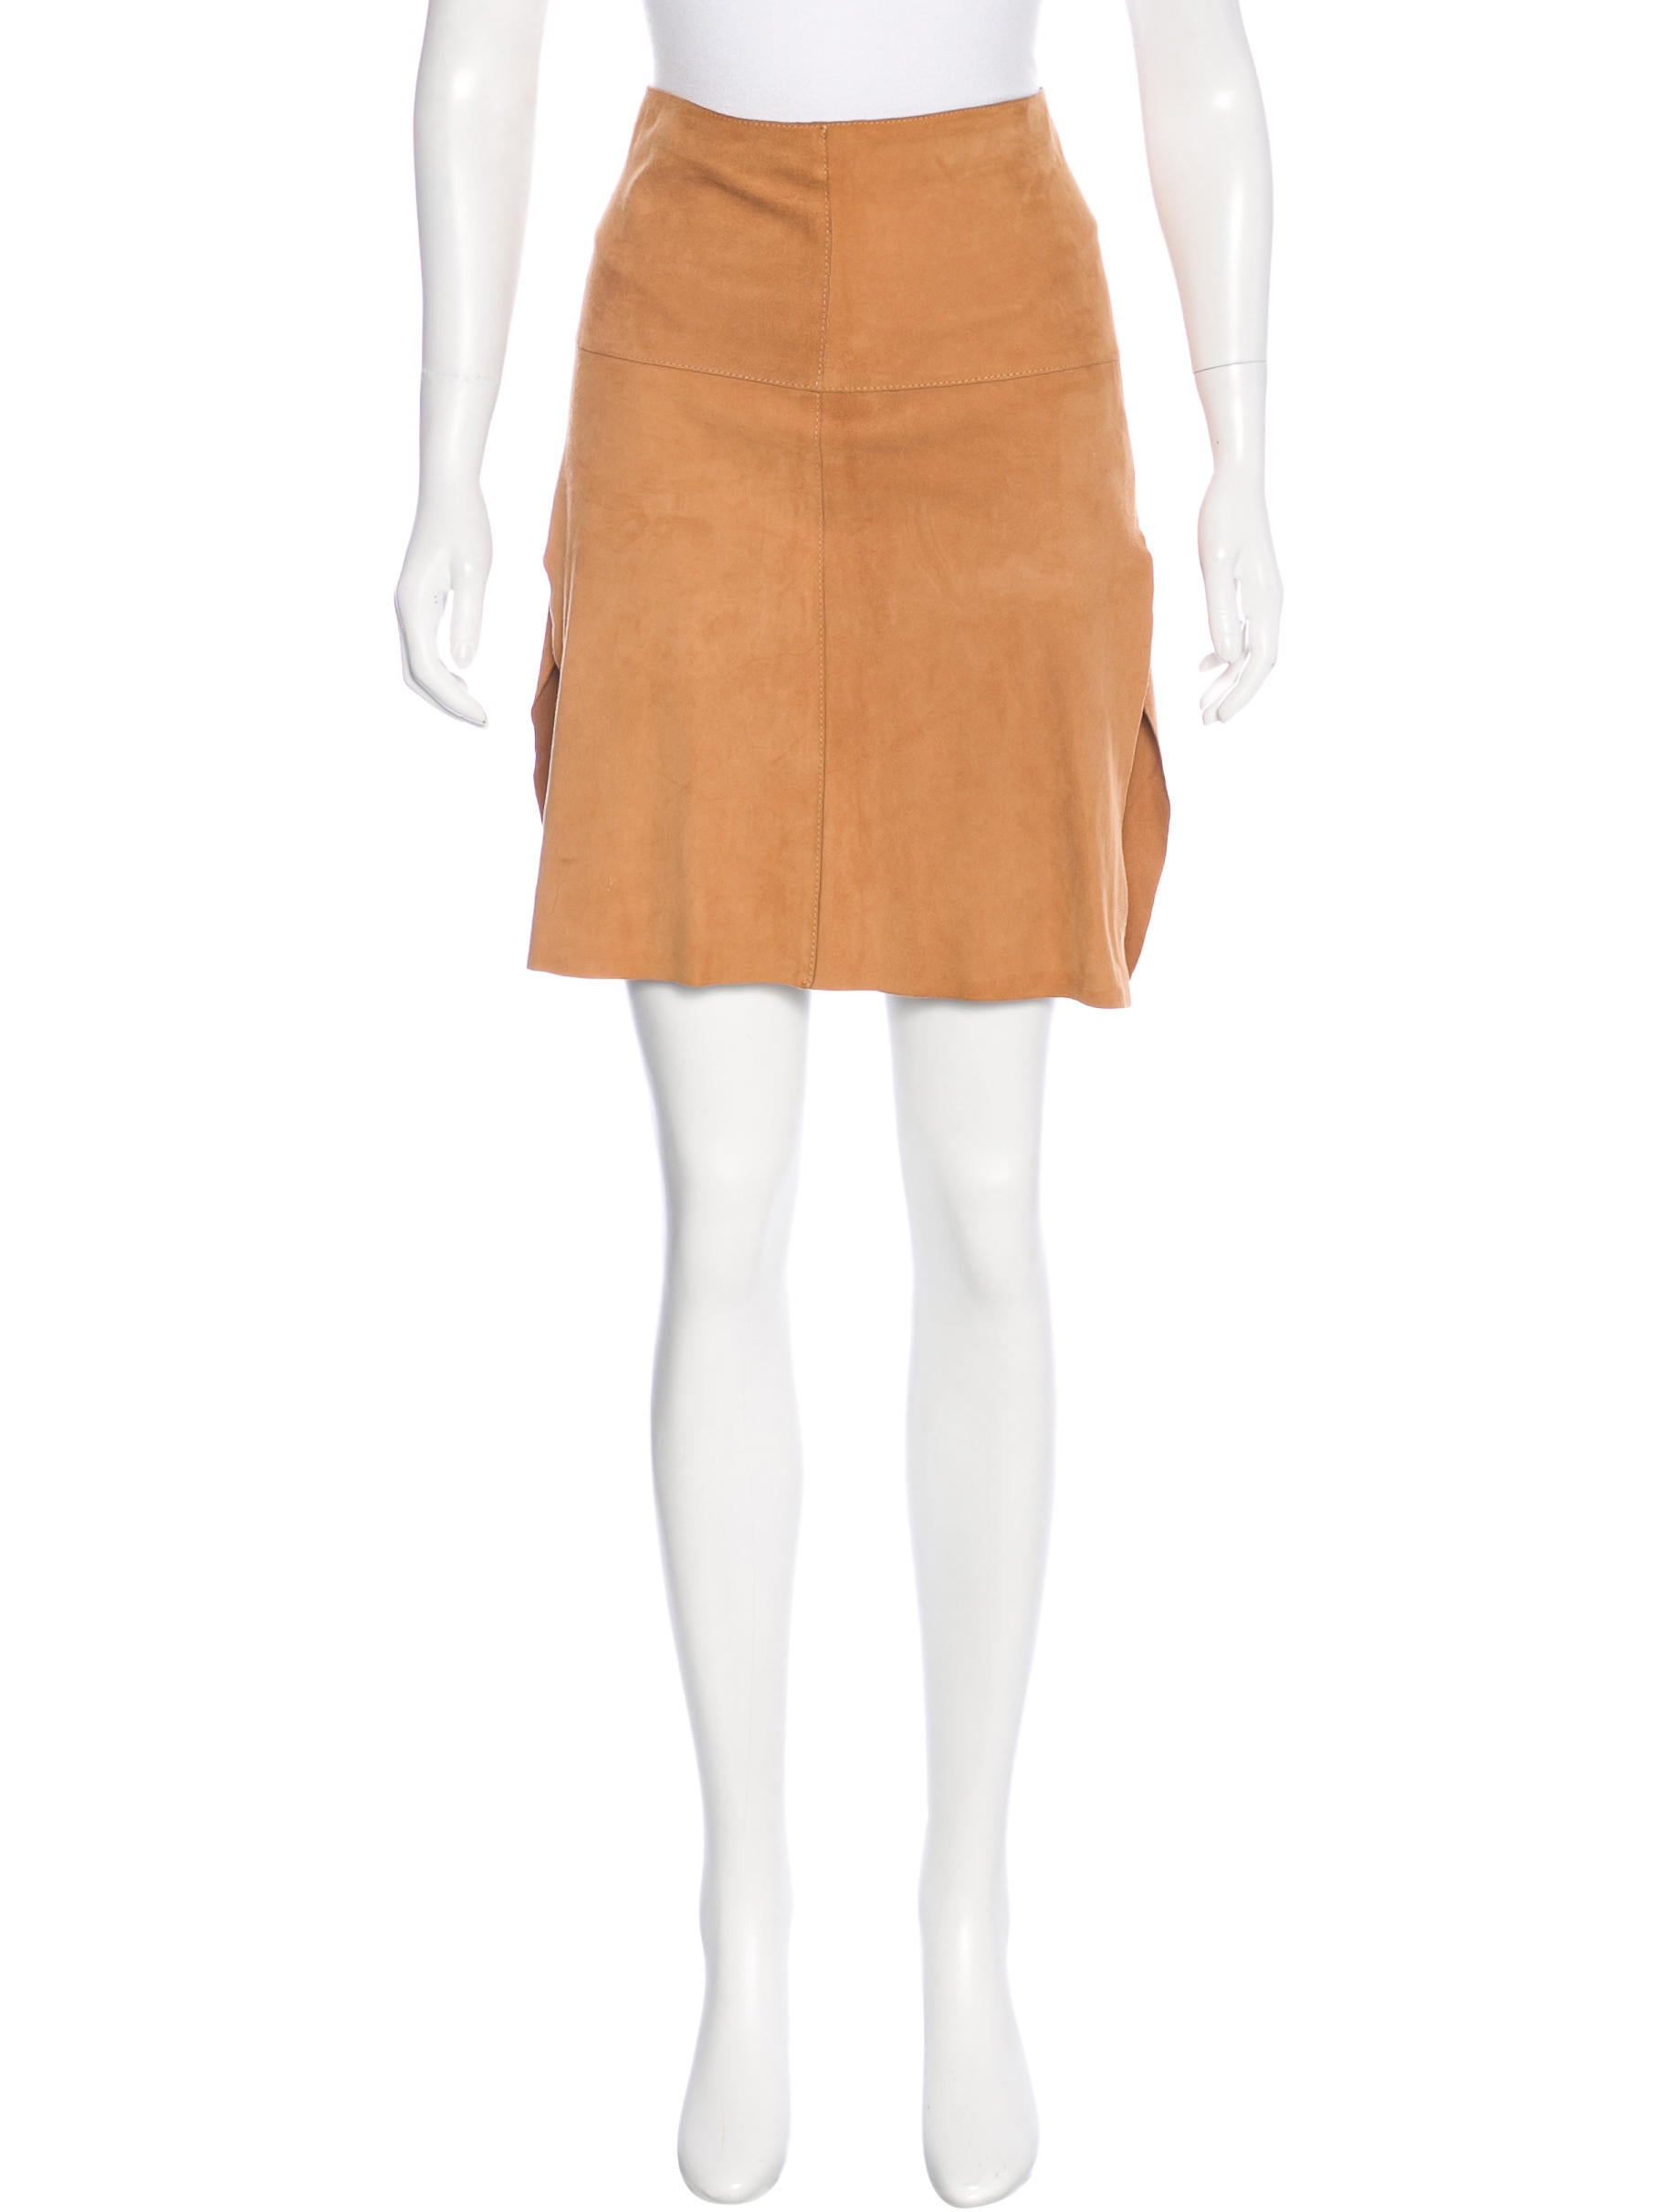 dolce gabbana suede a line skirt clothing dag76715